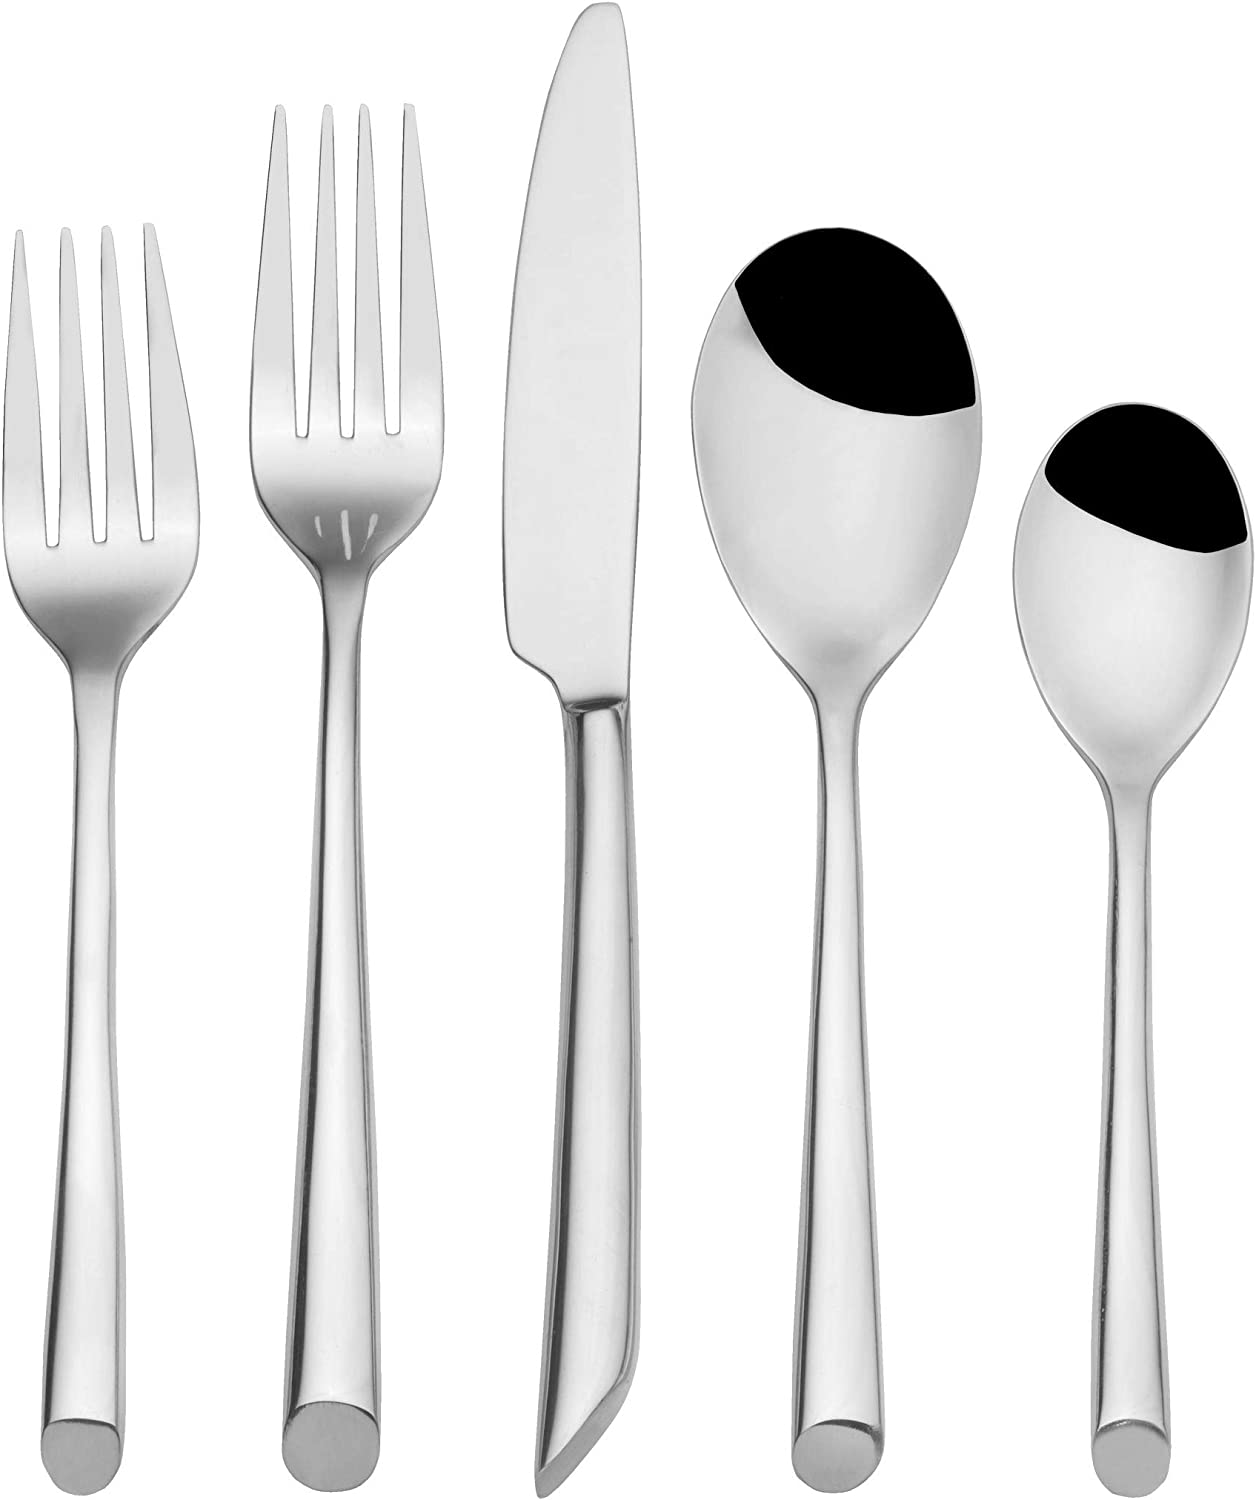 Towle Living Wave 42-Piece Forged Stainless Steel Flatware Set, Service for 8